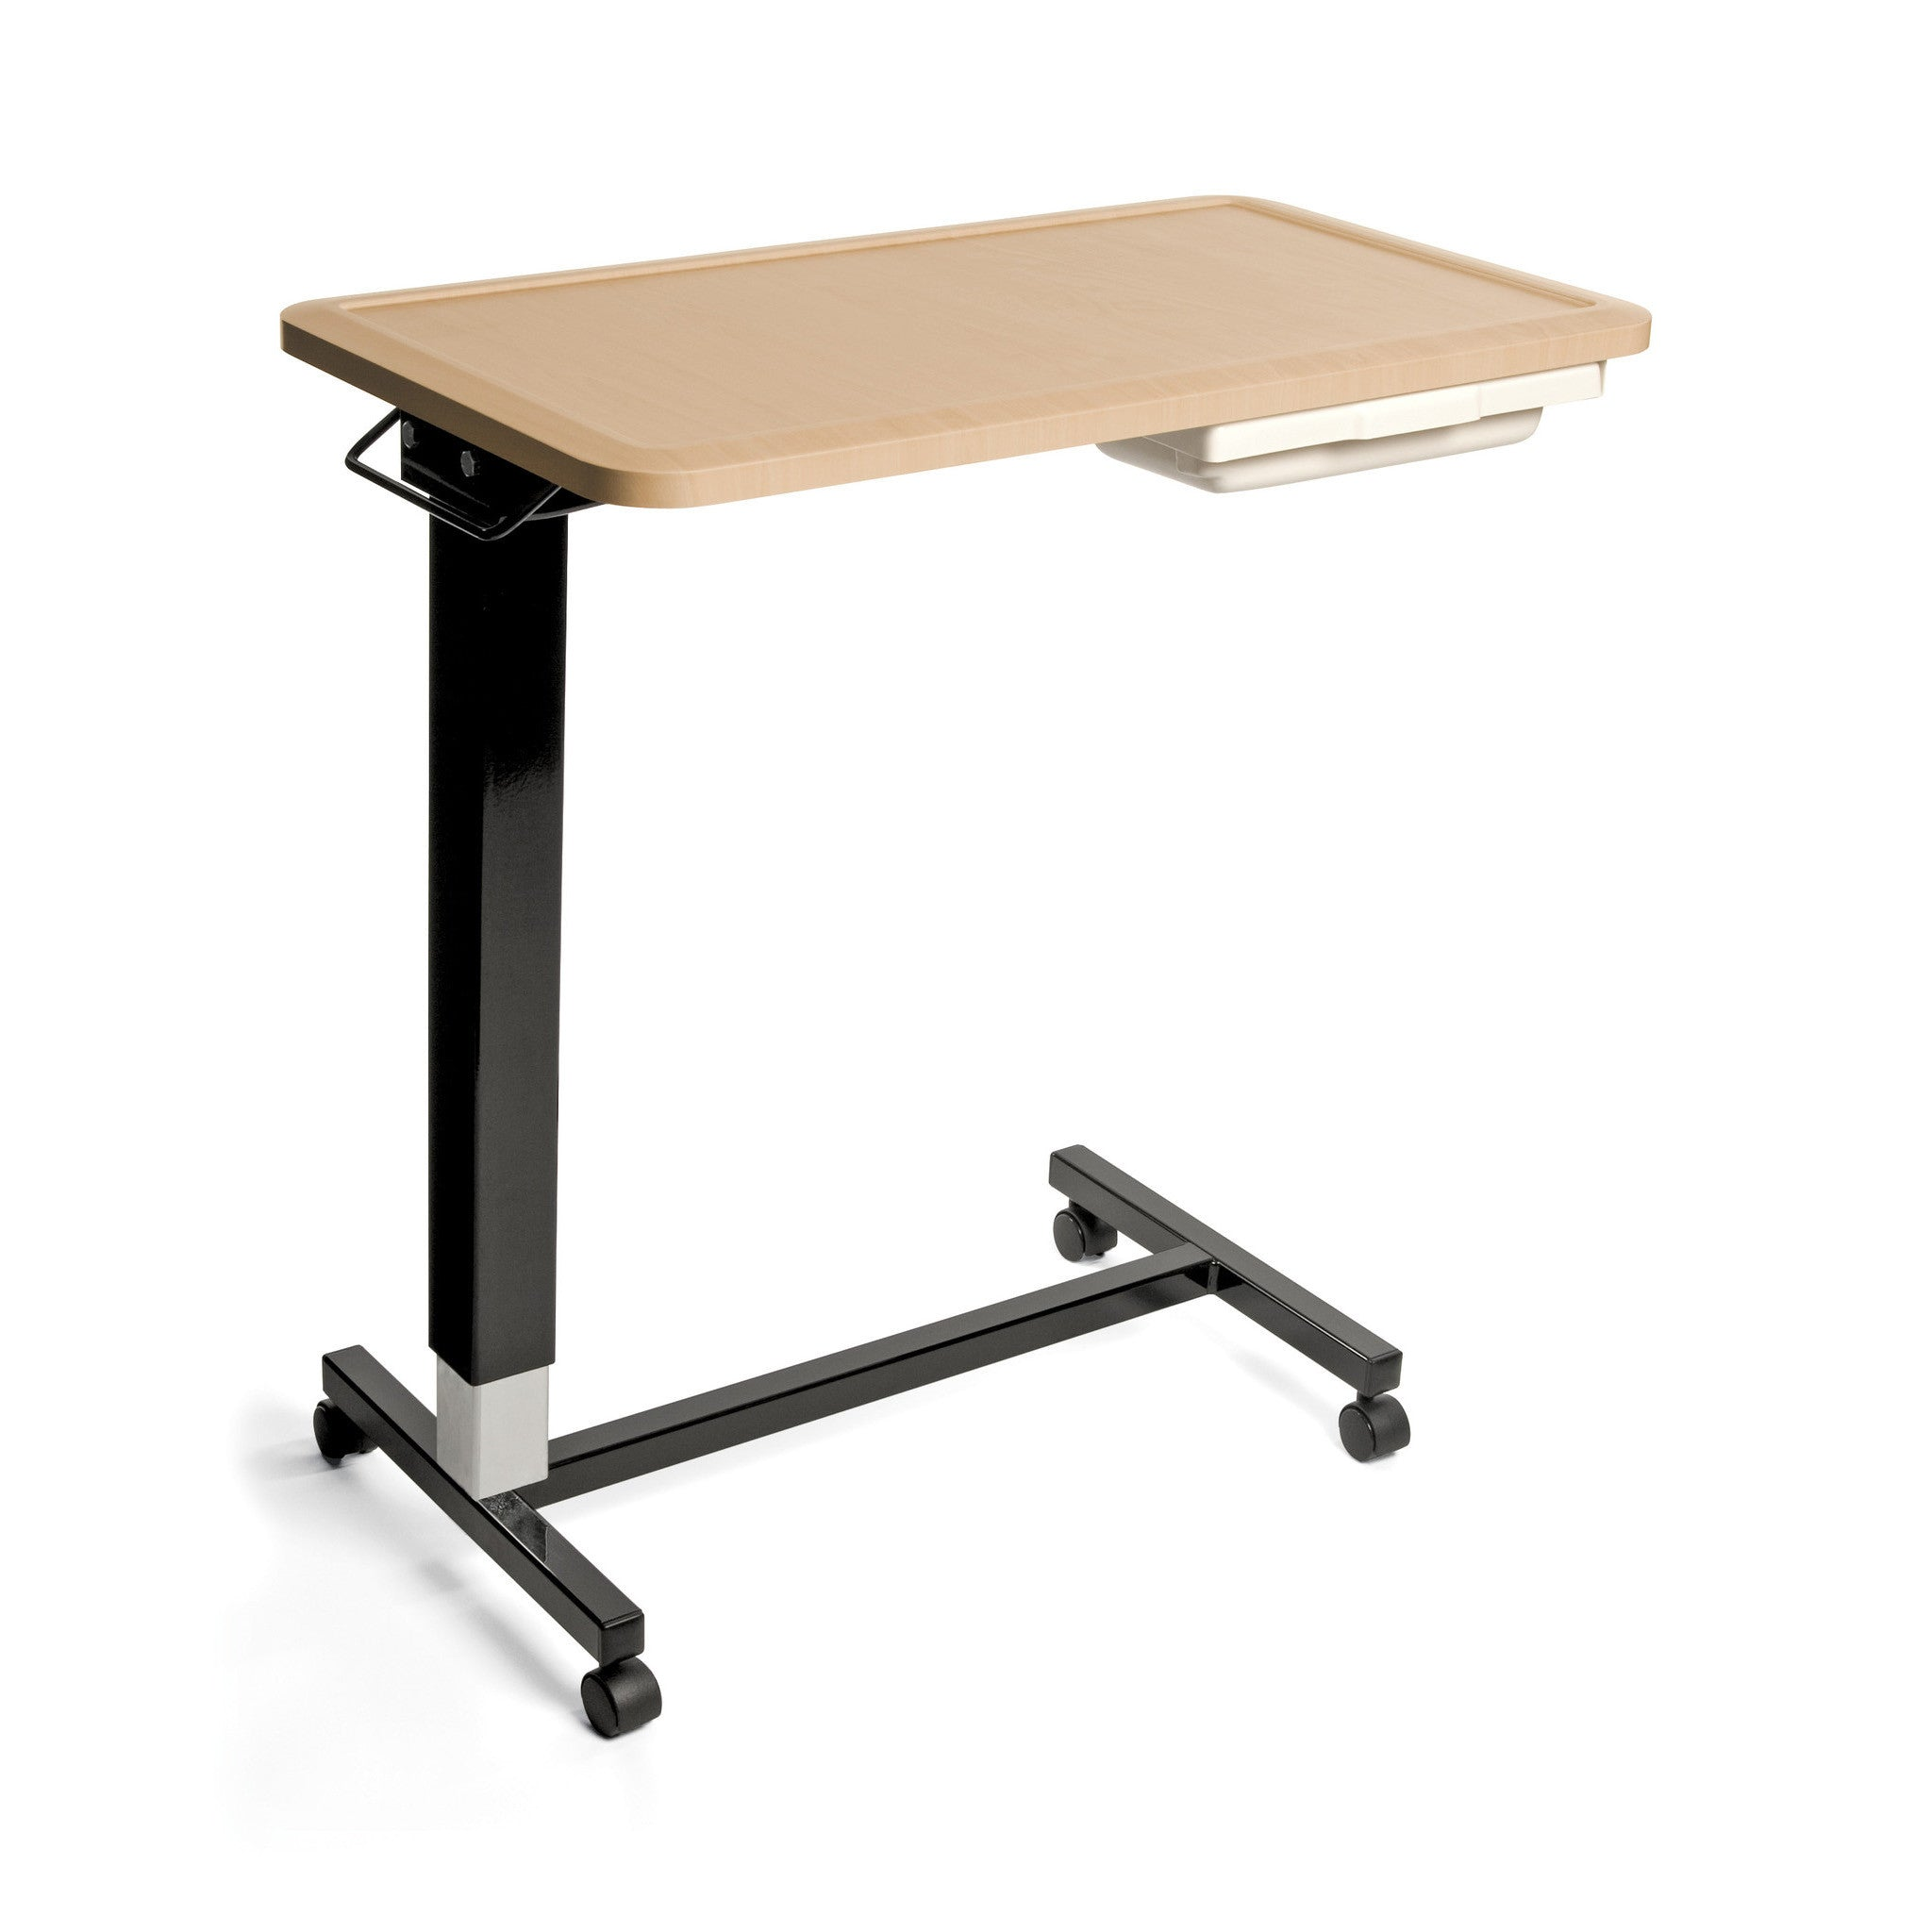 laptop sdadi table side desk com adjustable dark edition with sofa cart dp small wheels computer for amazon grain spaces overbed